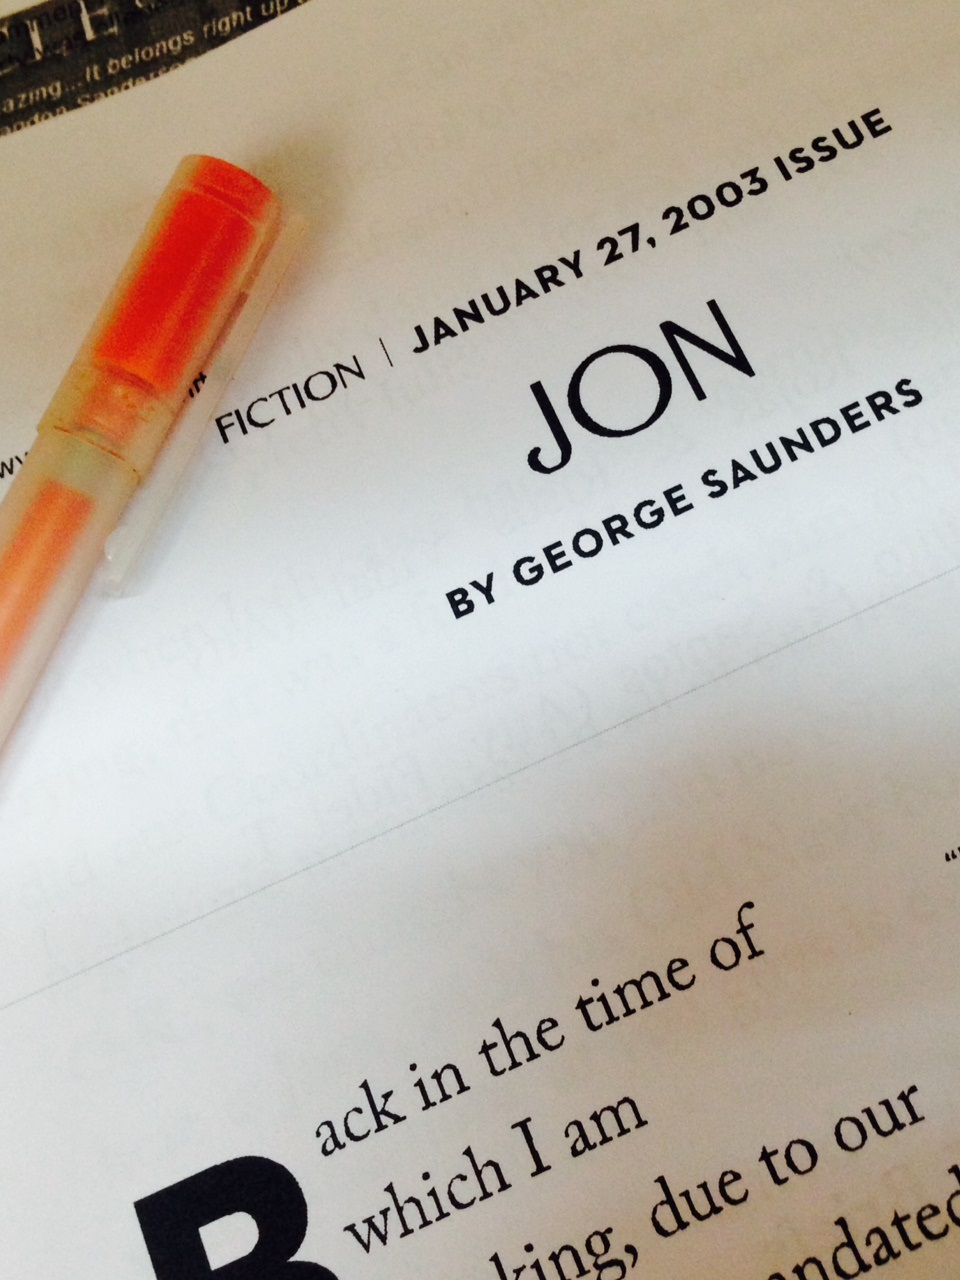 Story Review: Jon by George Saunders